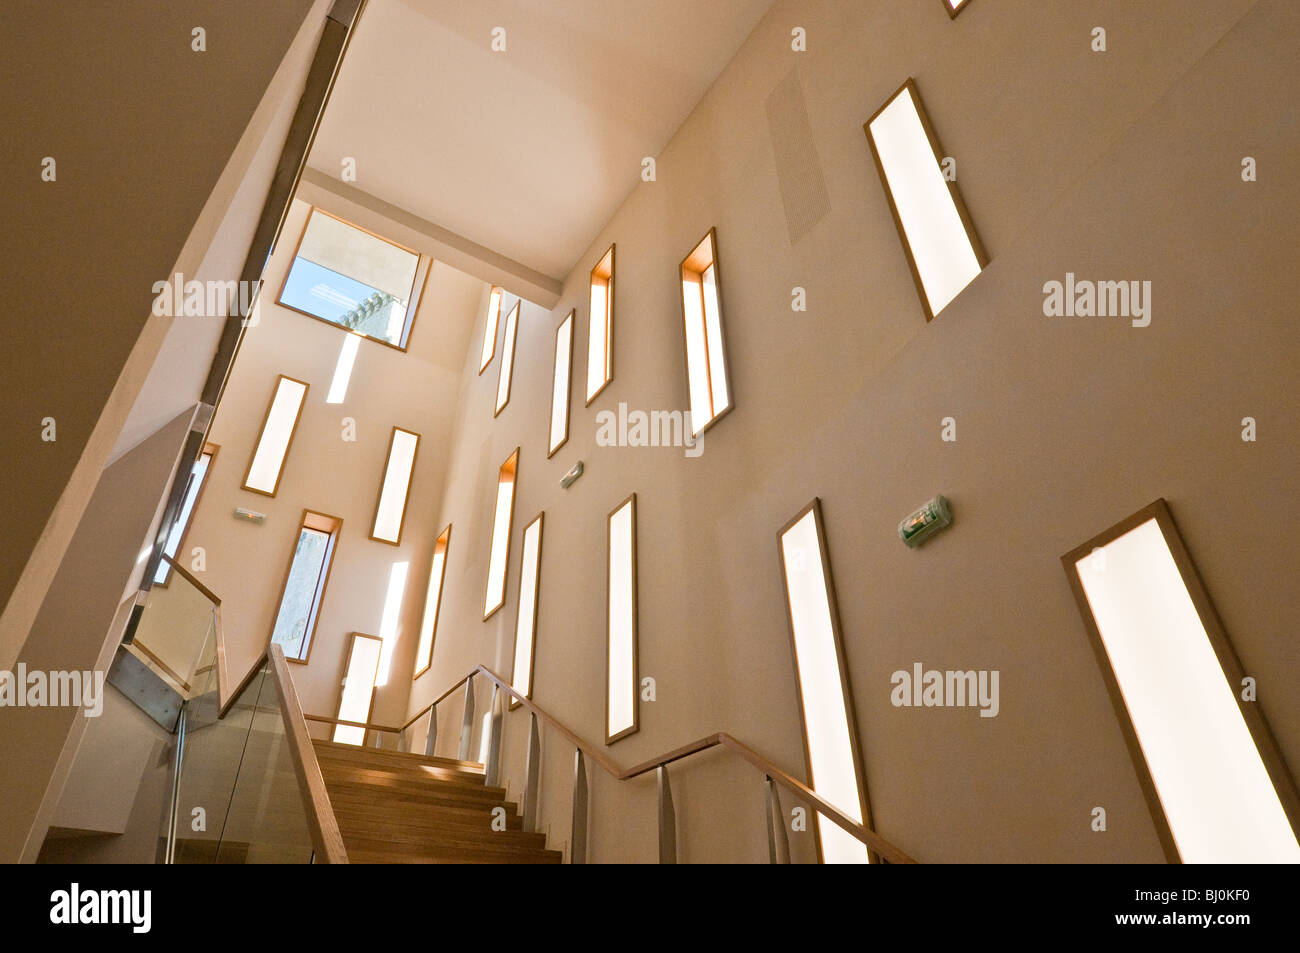 Interior stairway of new Prehistory Museum, Le Grand-Pressigny, sud-Touraine, France. - Stock Image